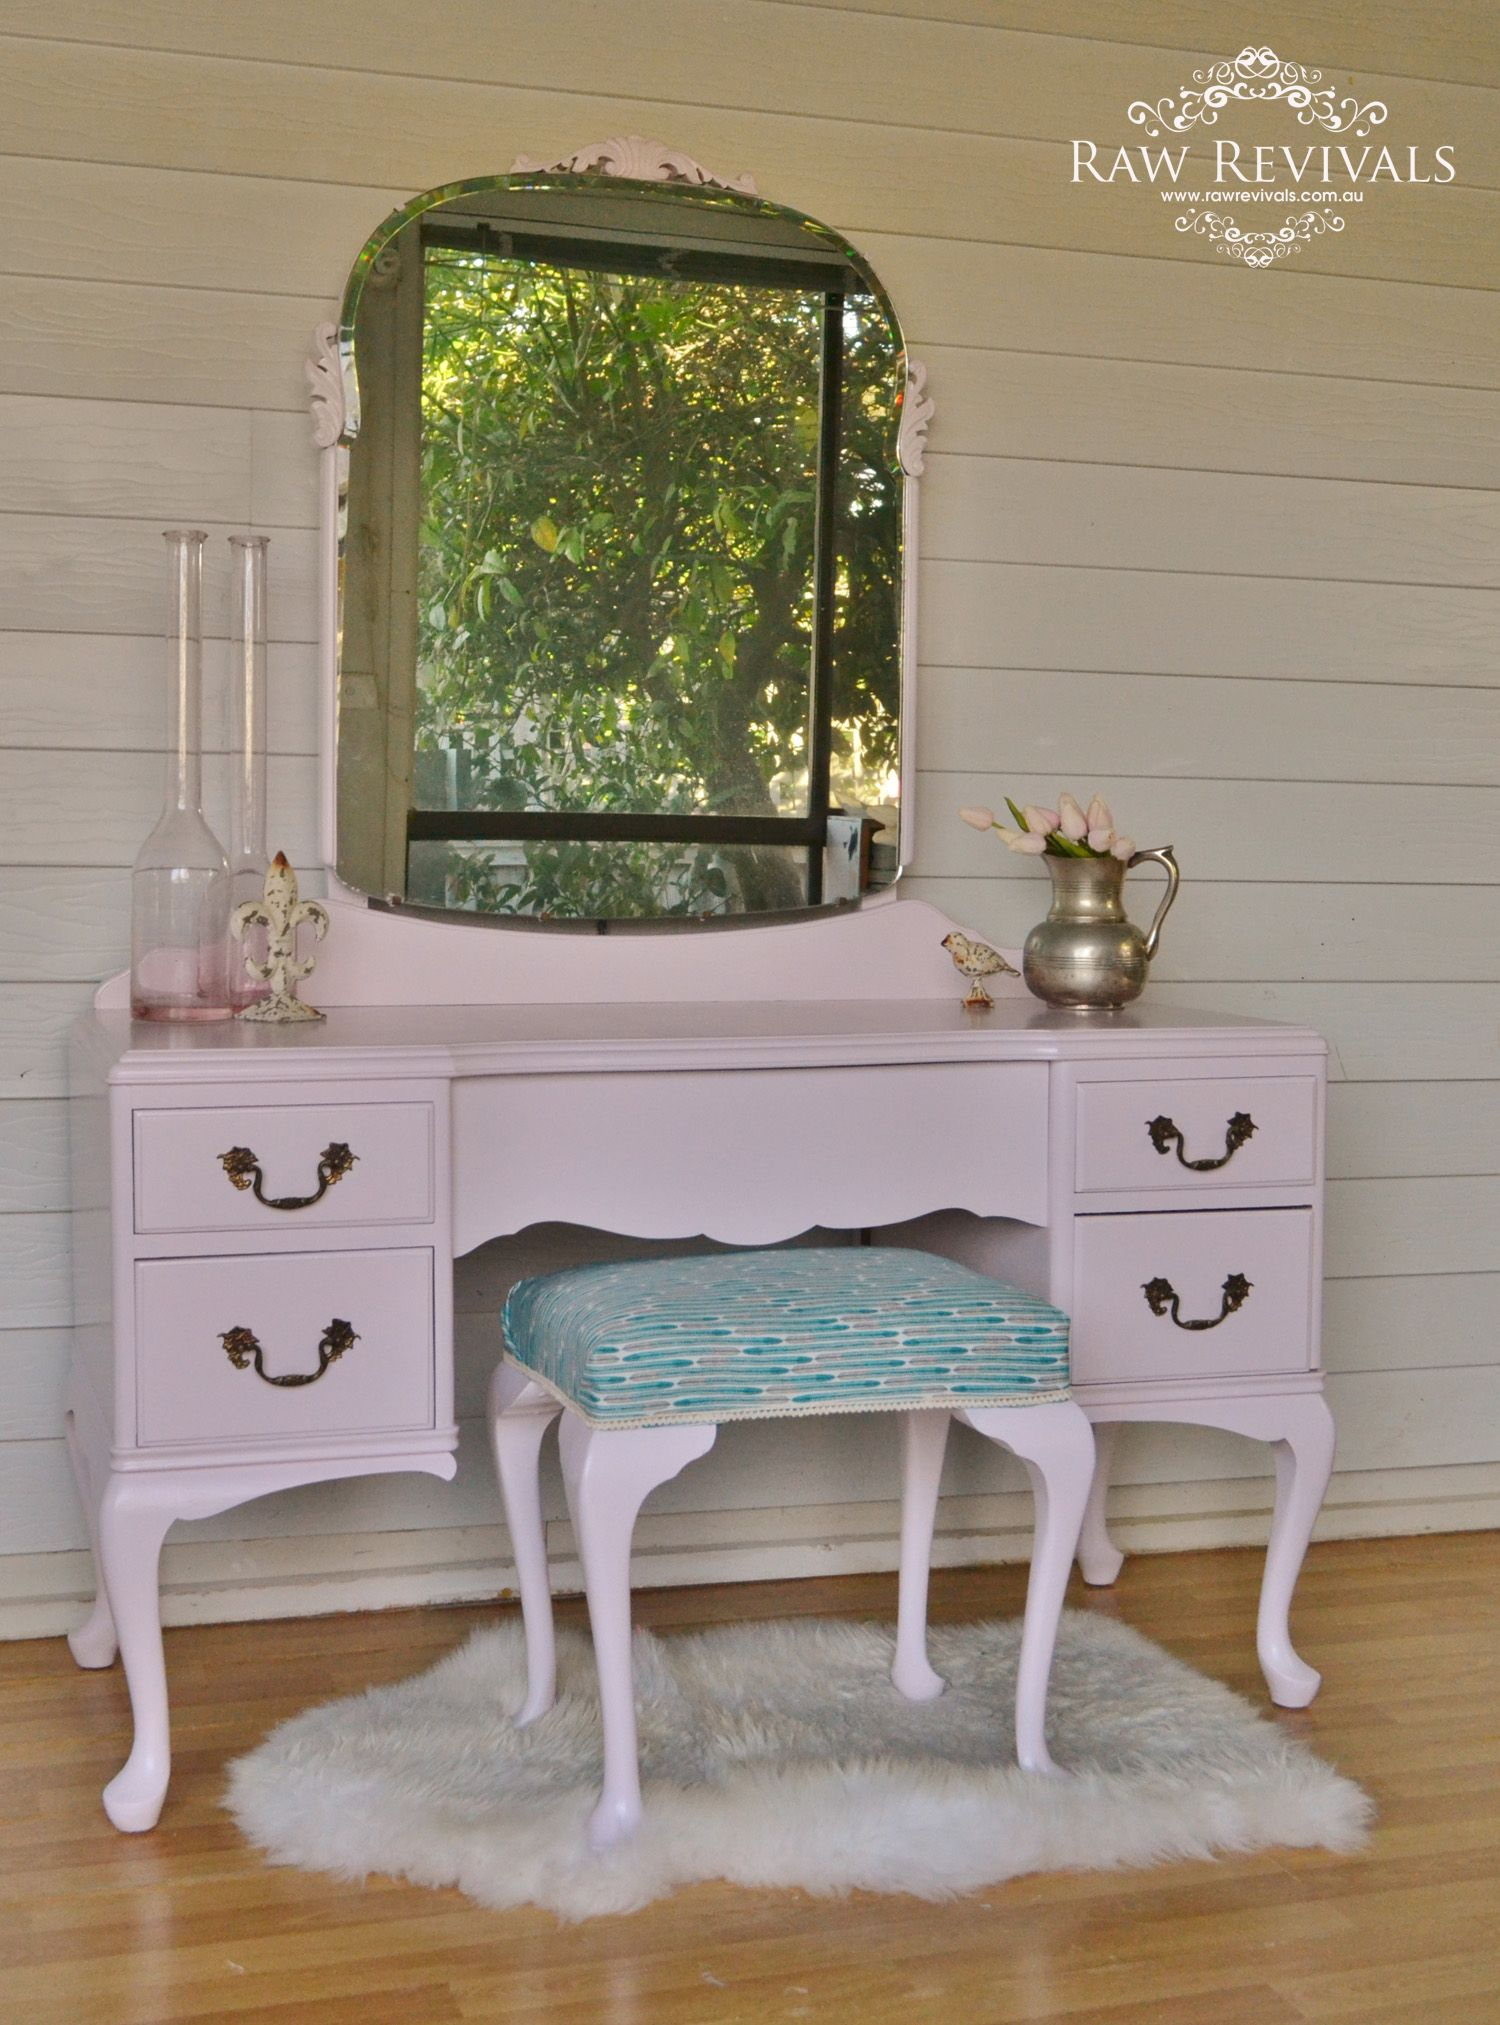 Antique queen anne dressing table given a modern revival Painted in